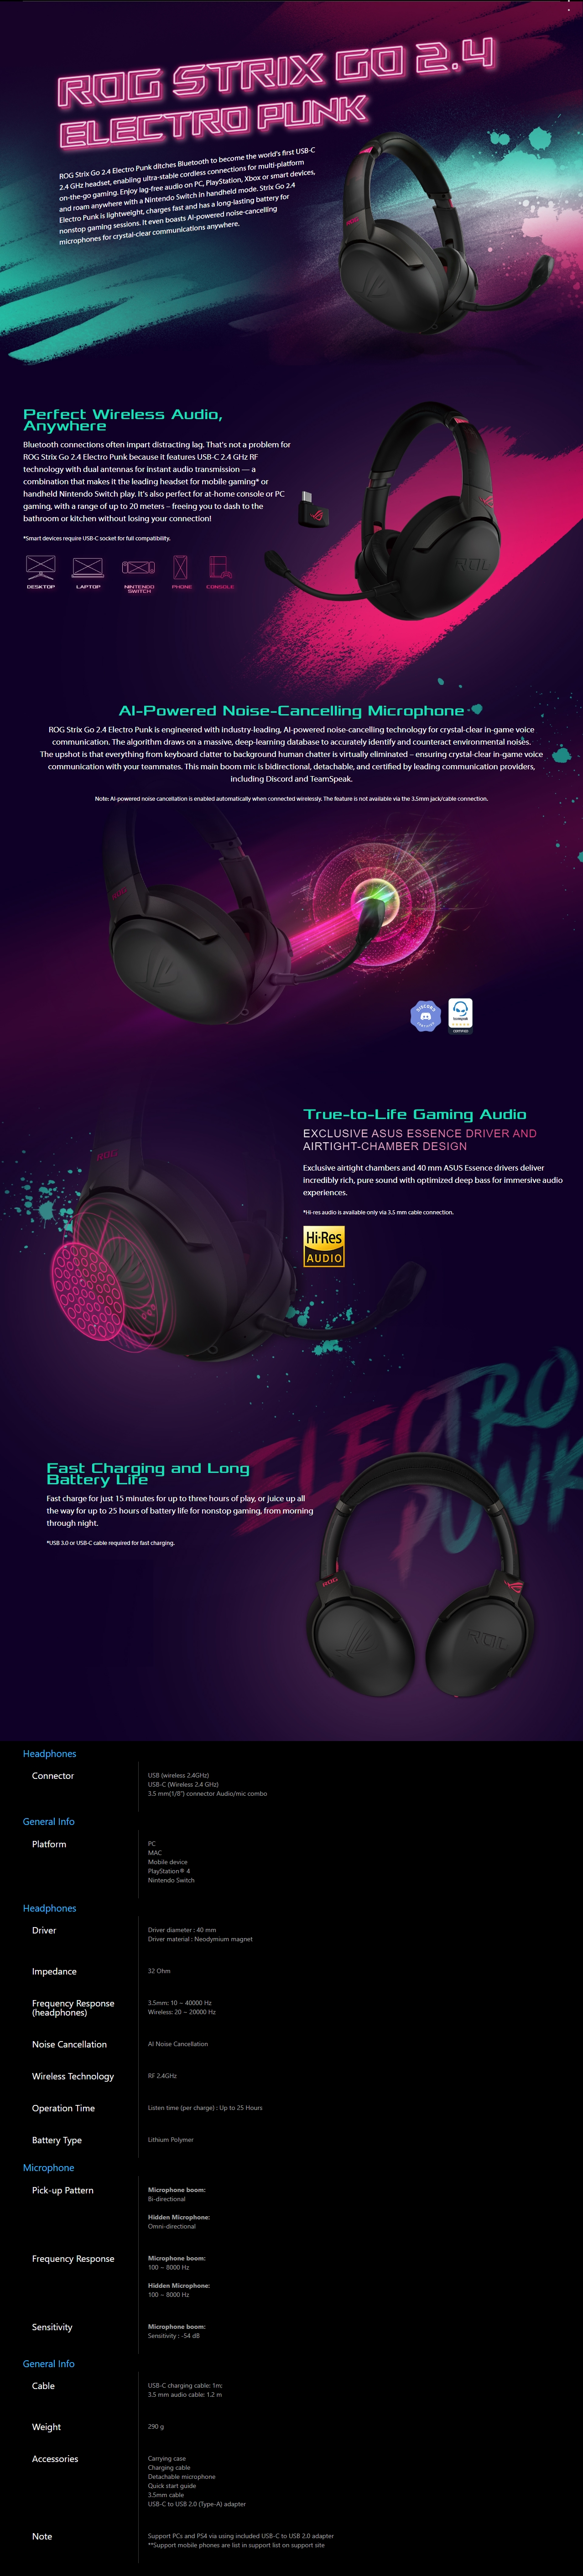 Buy Now | ASUS ROG Strix GO 2.4Ghz Wireless Gaming Headset - Electro Punk |  PLE Computers